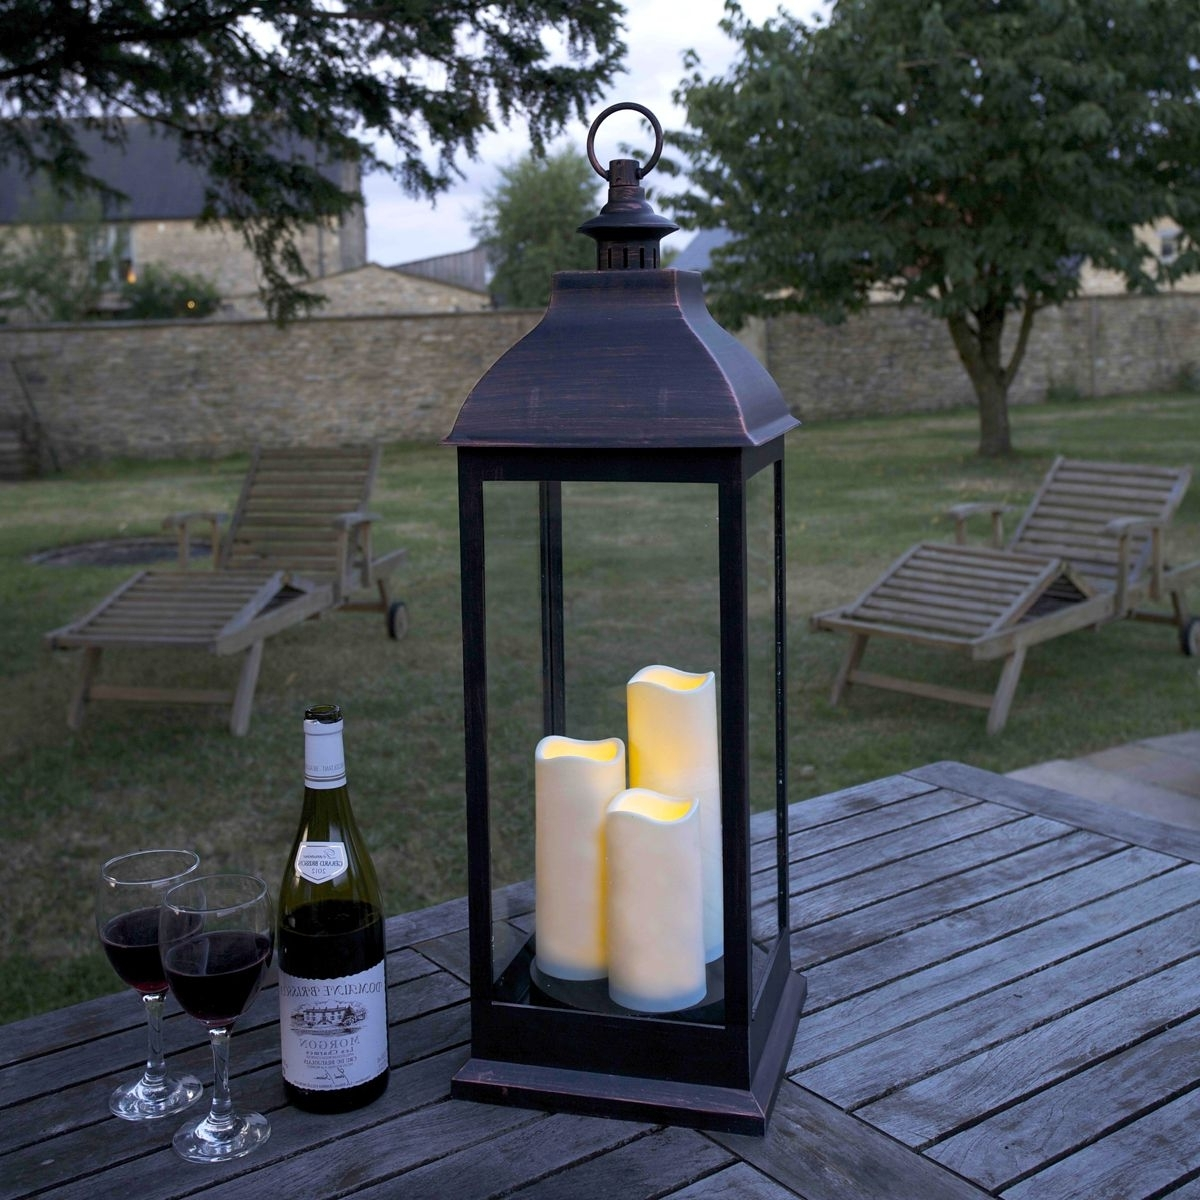 Outdoor Lanterns With Led Candles Within 2019 Giant Copper Look Led Lantern (View 4 of 20)